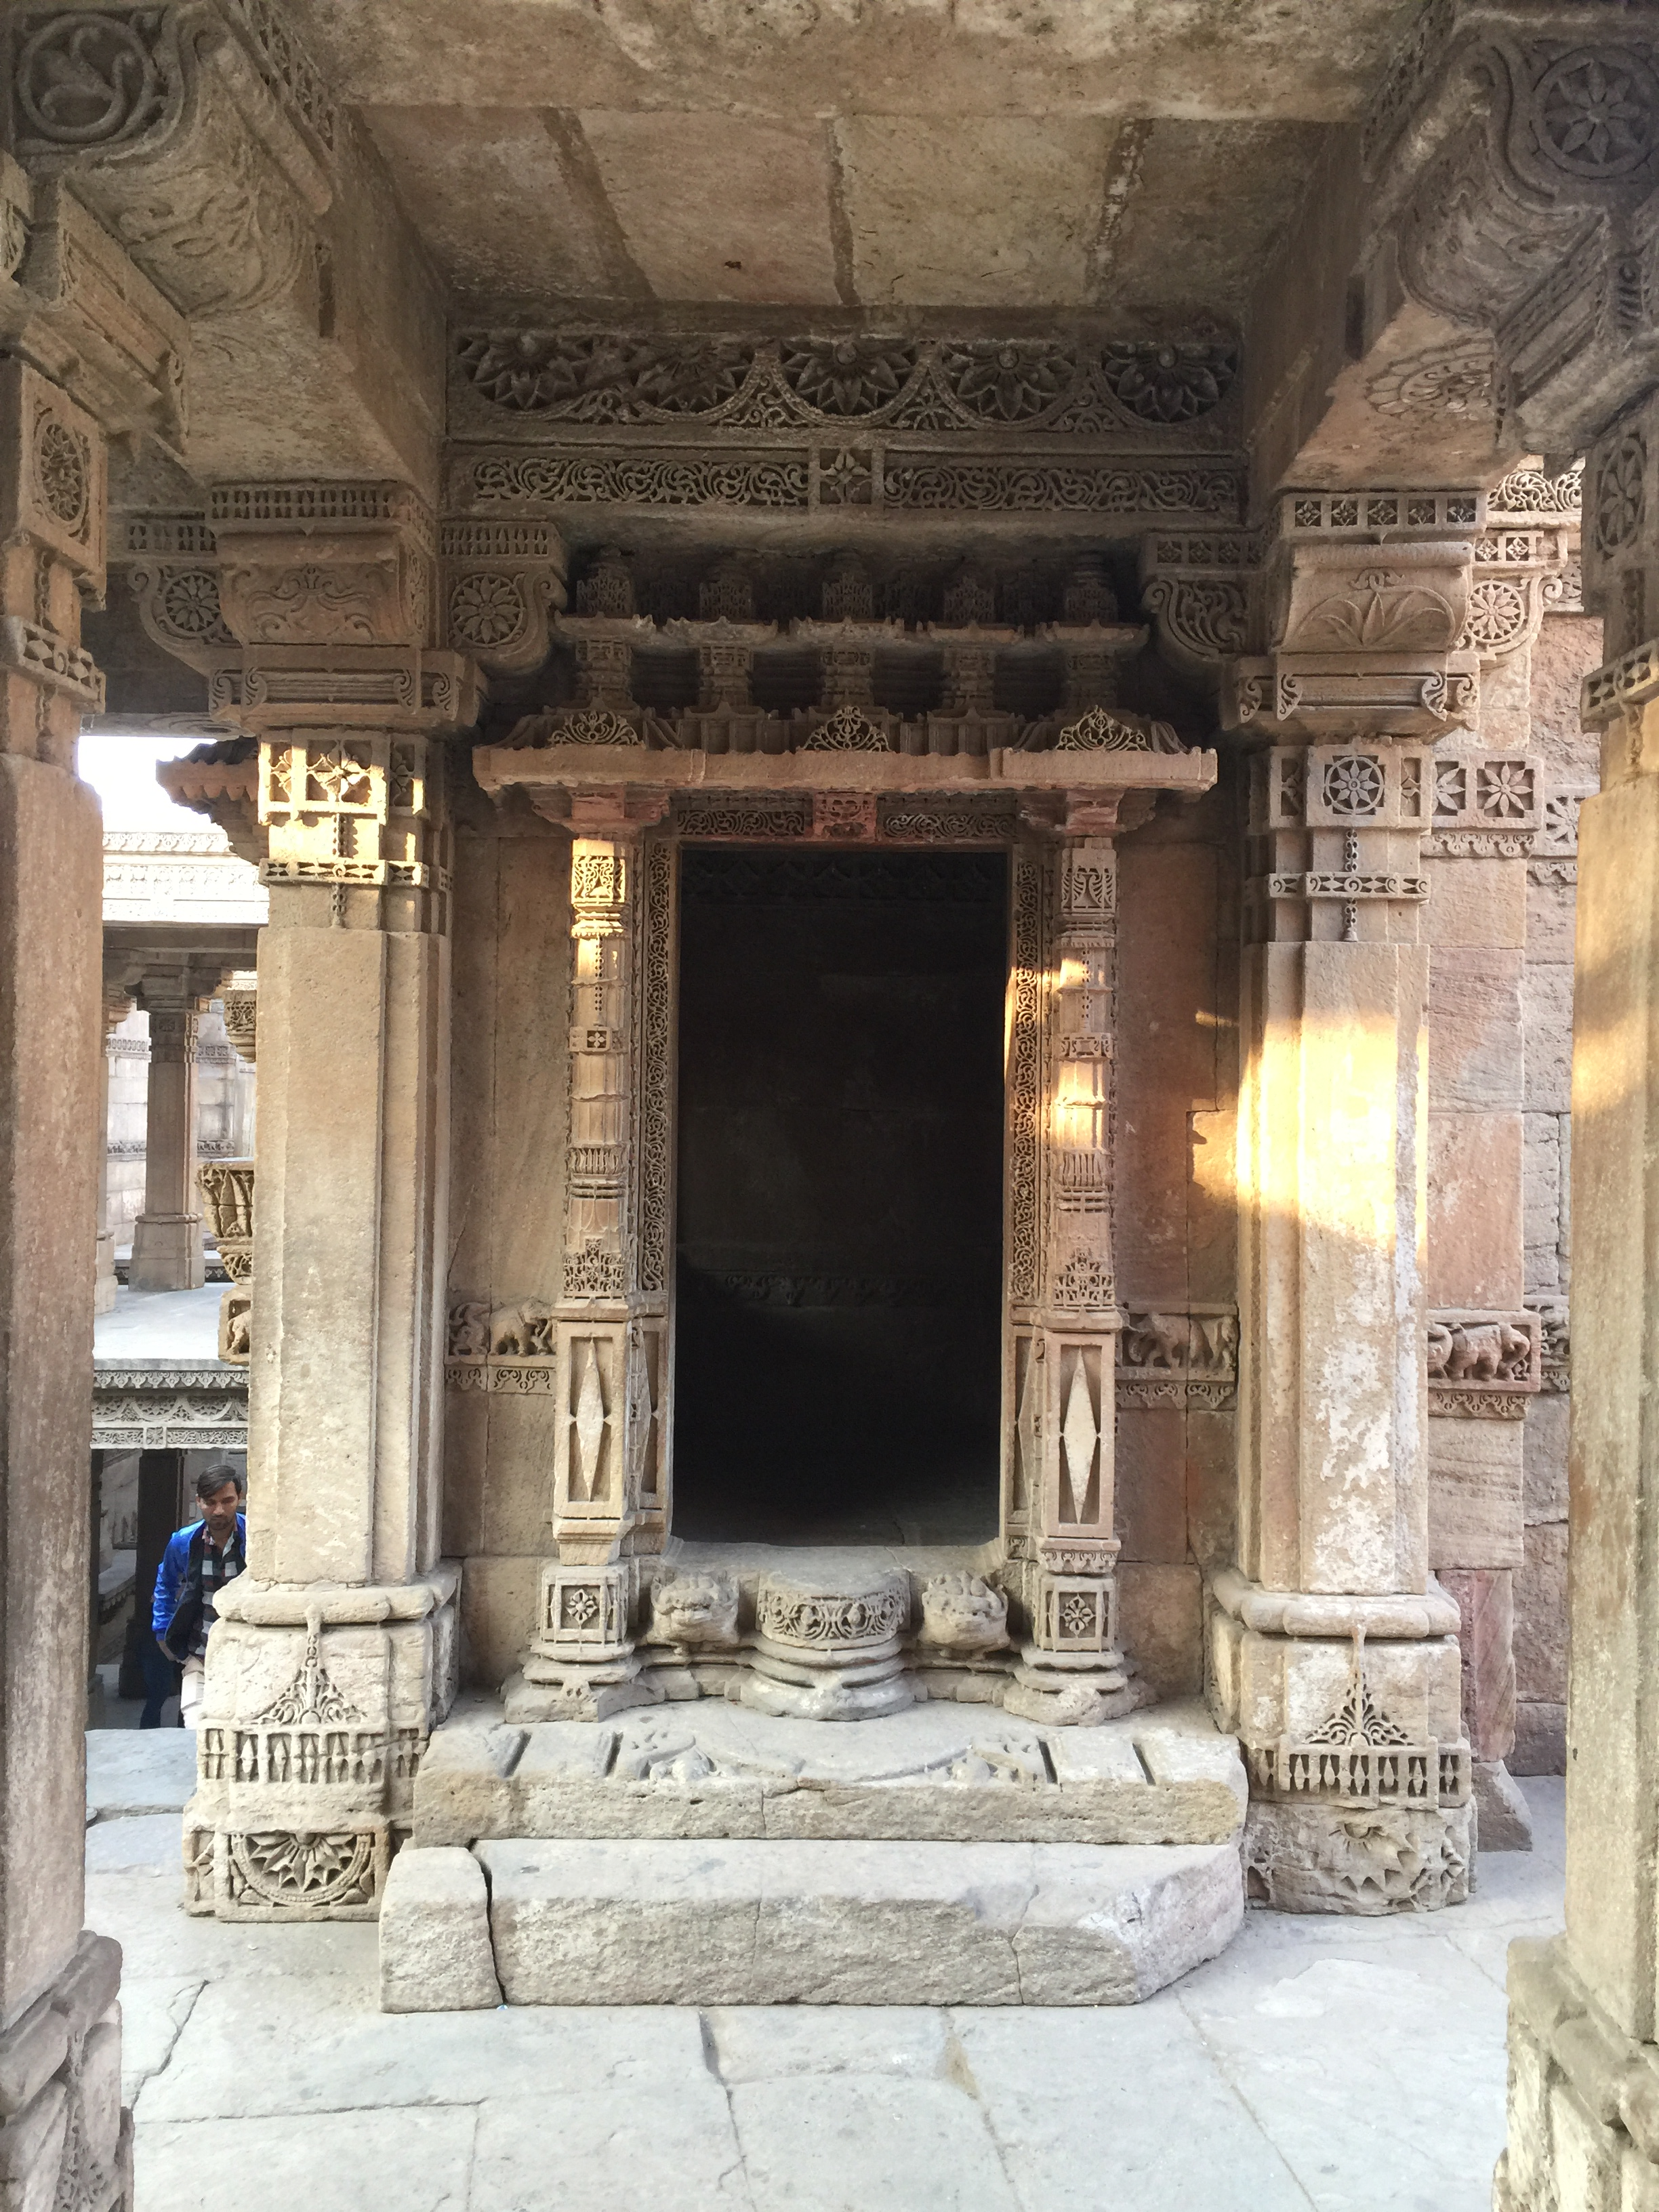 adalaj - a small room like structure in basement one